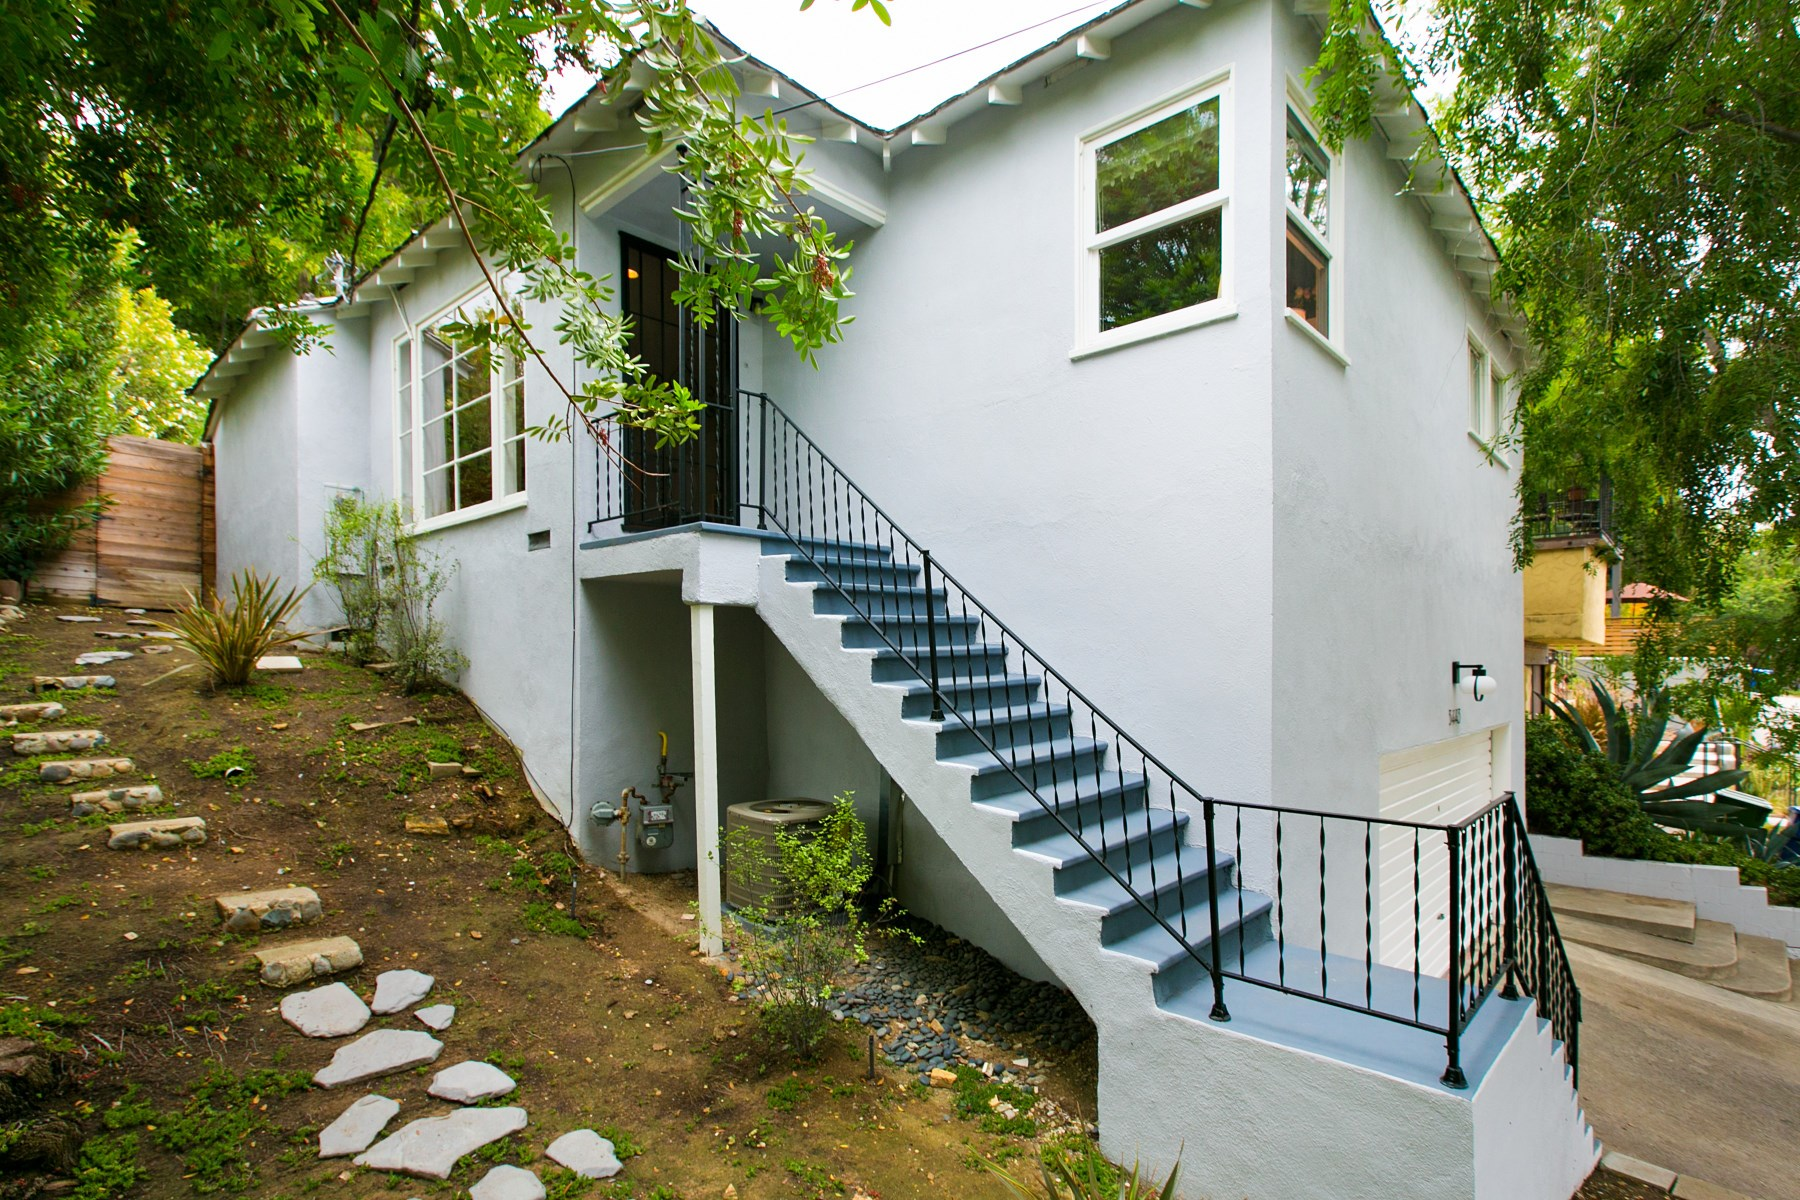 Single Family Home for Sale at 3443 Loma Lada Drive Glassell Park, Los Angeles, California, 90065 United States